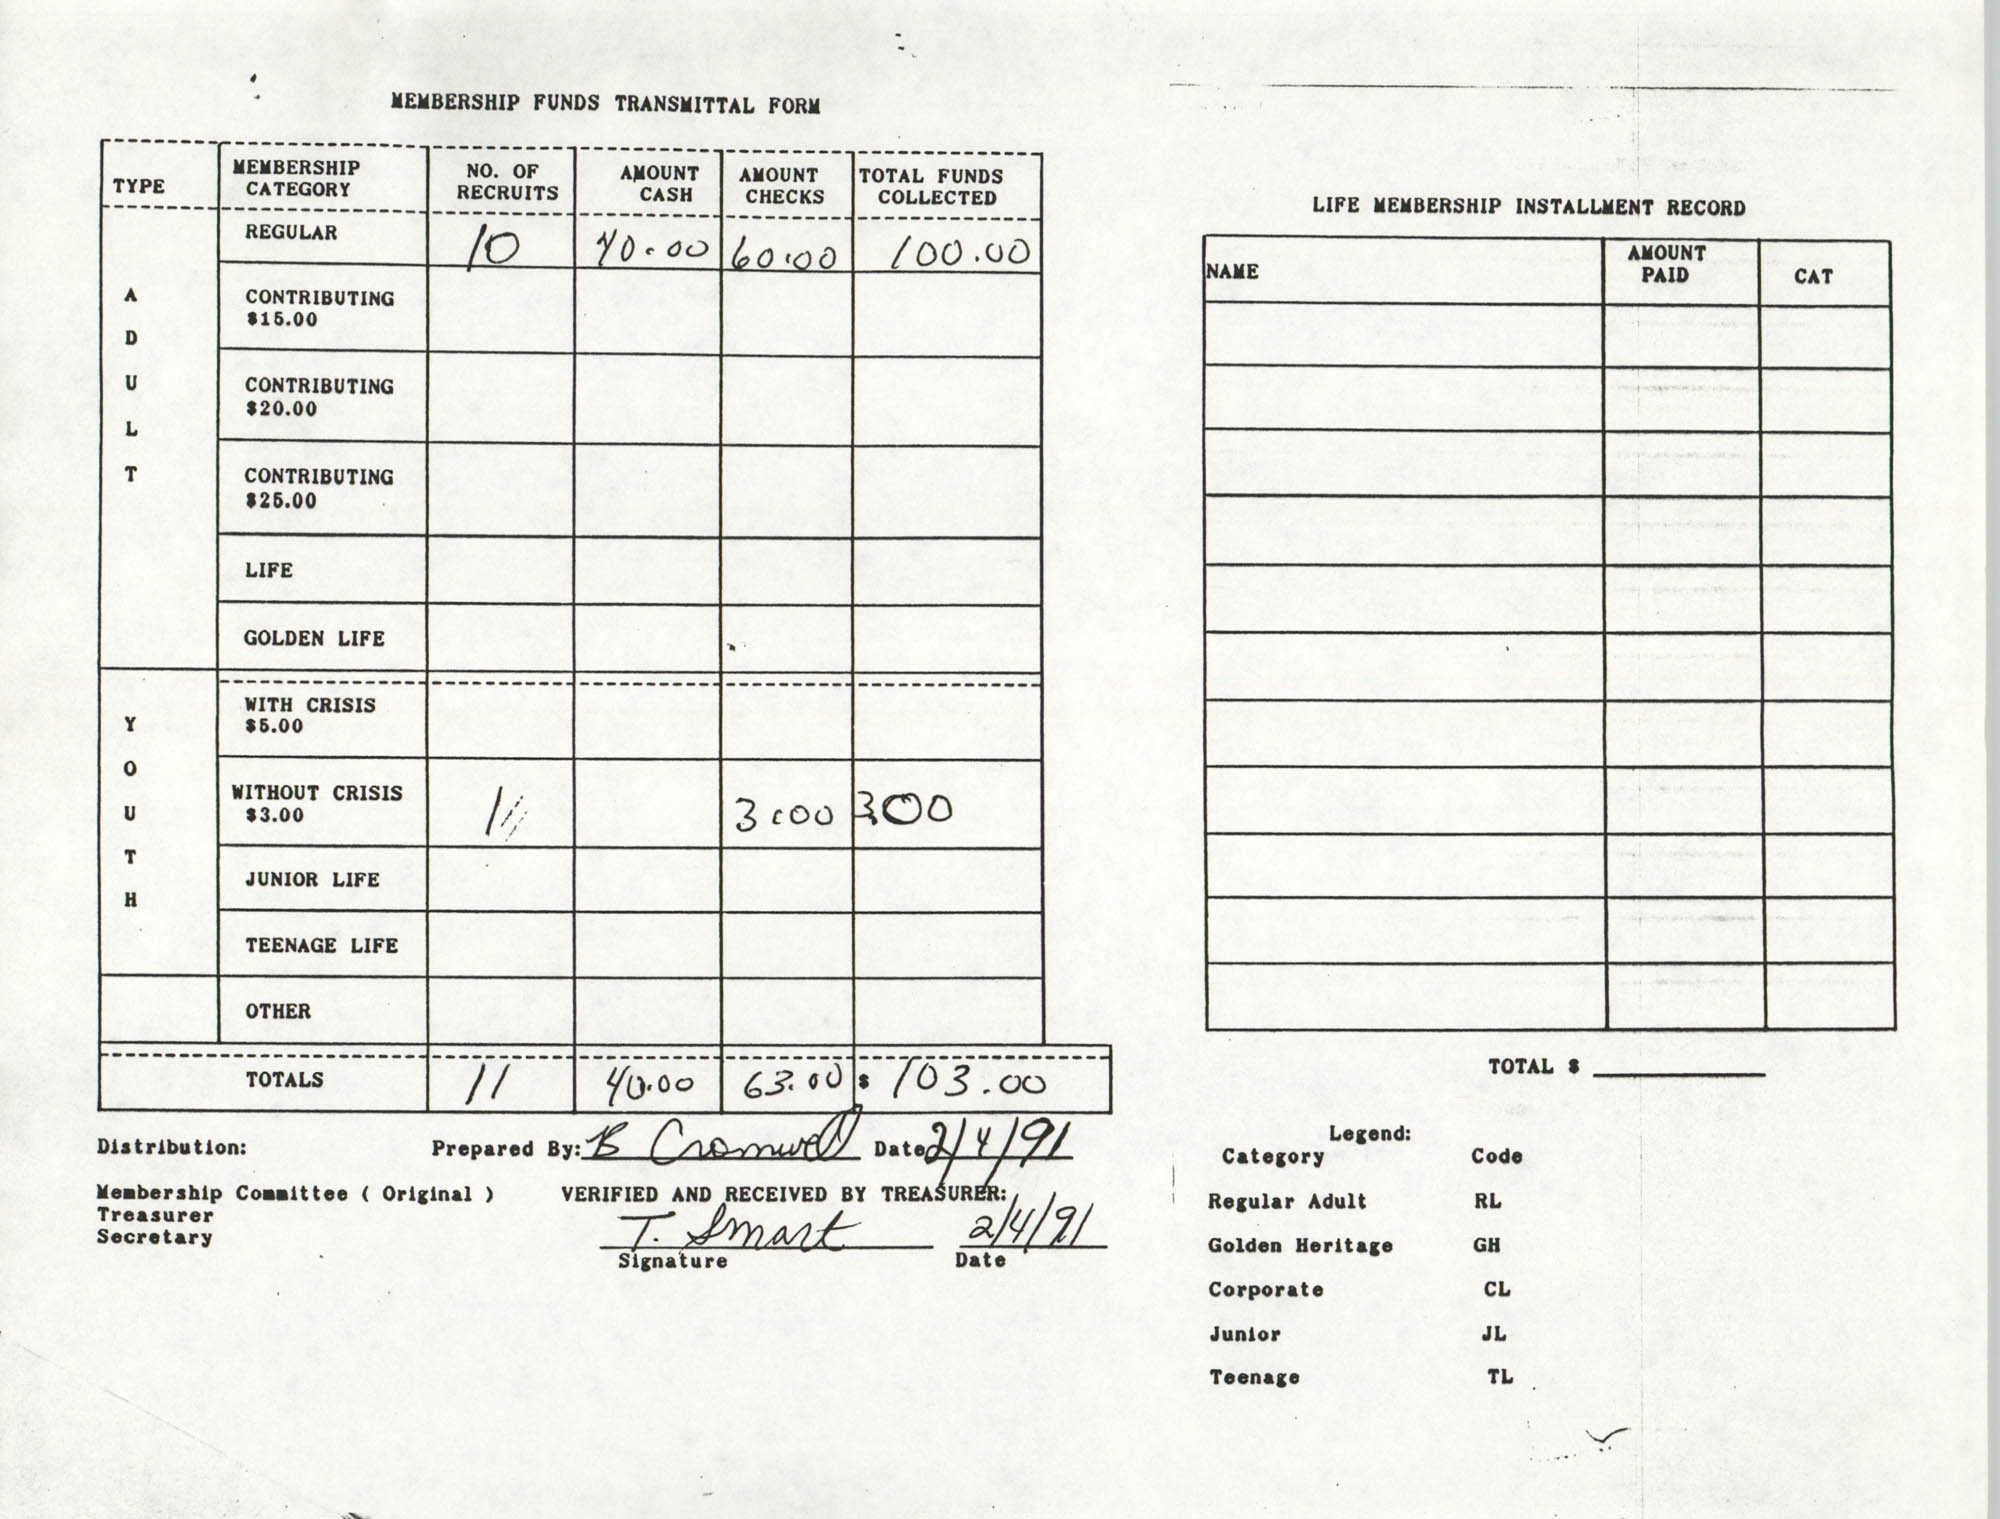 Charleston Branch of the NAACP Funds Transmittal Forms, February 1991, Page 1